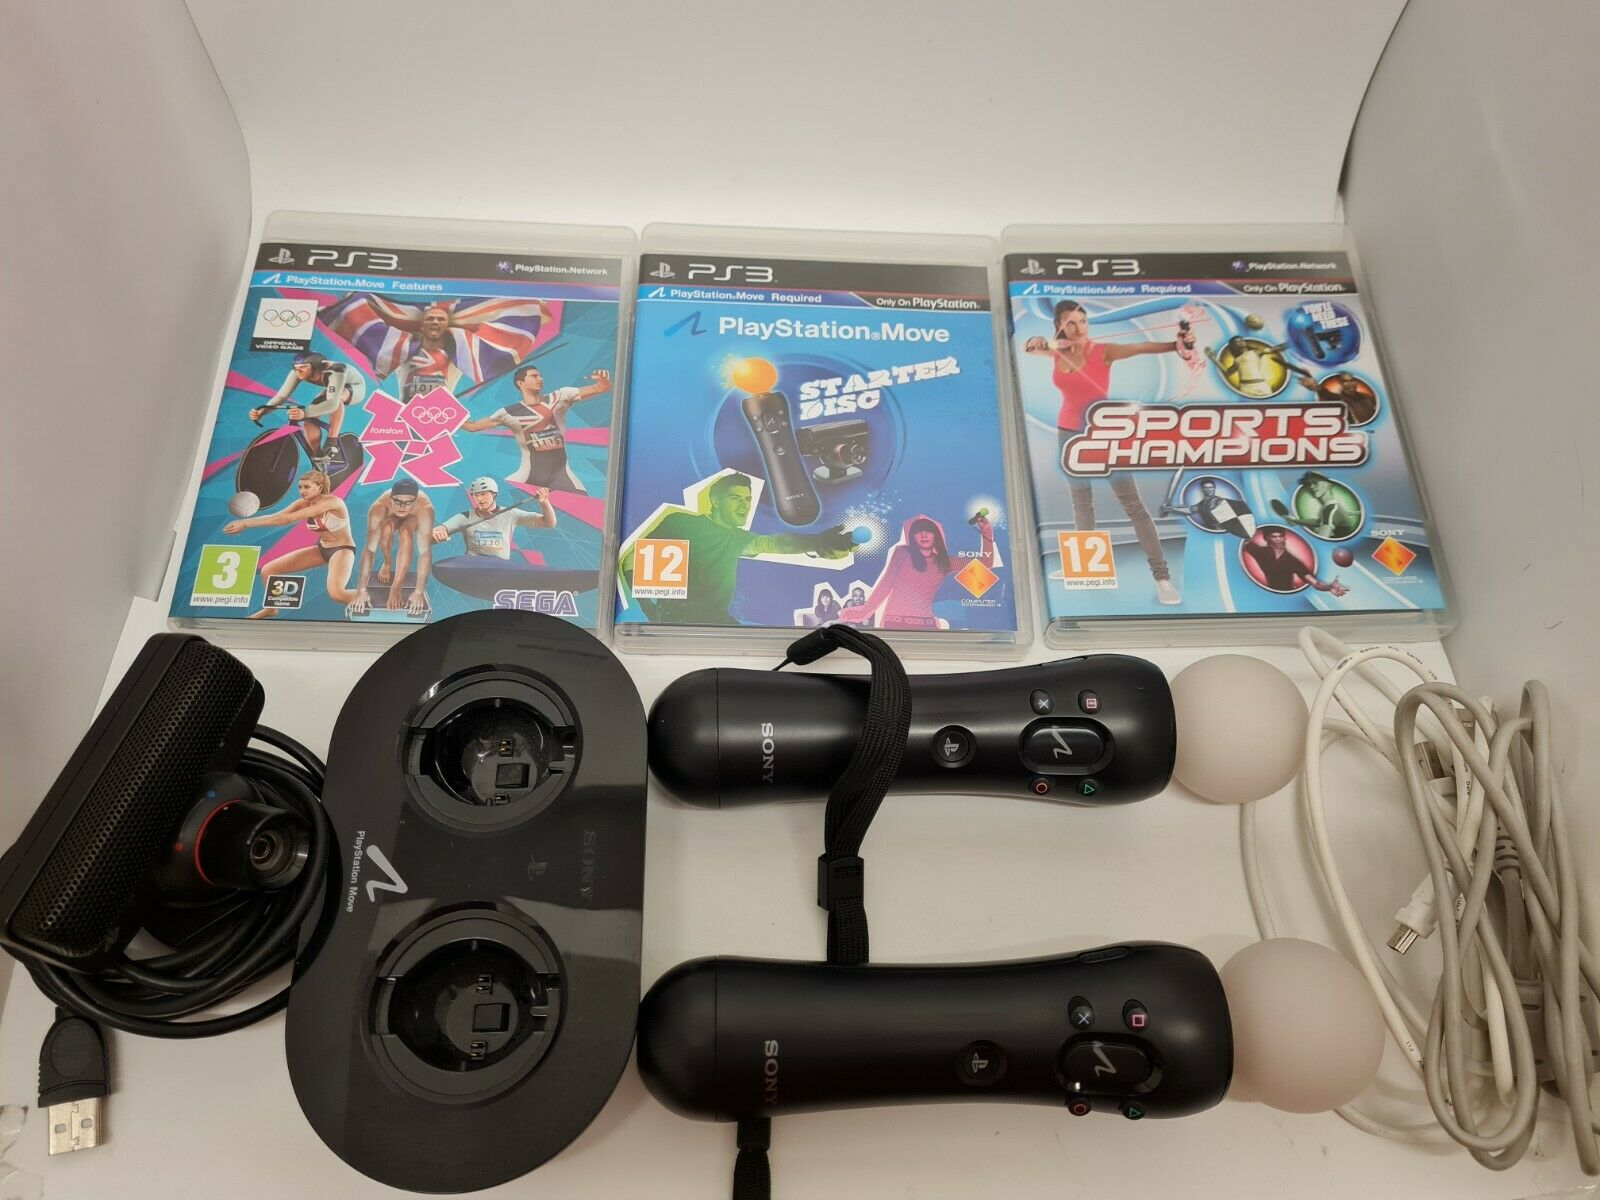 Sony Playstation Move PS3 Two Controlers, Camera and 3 Games